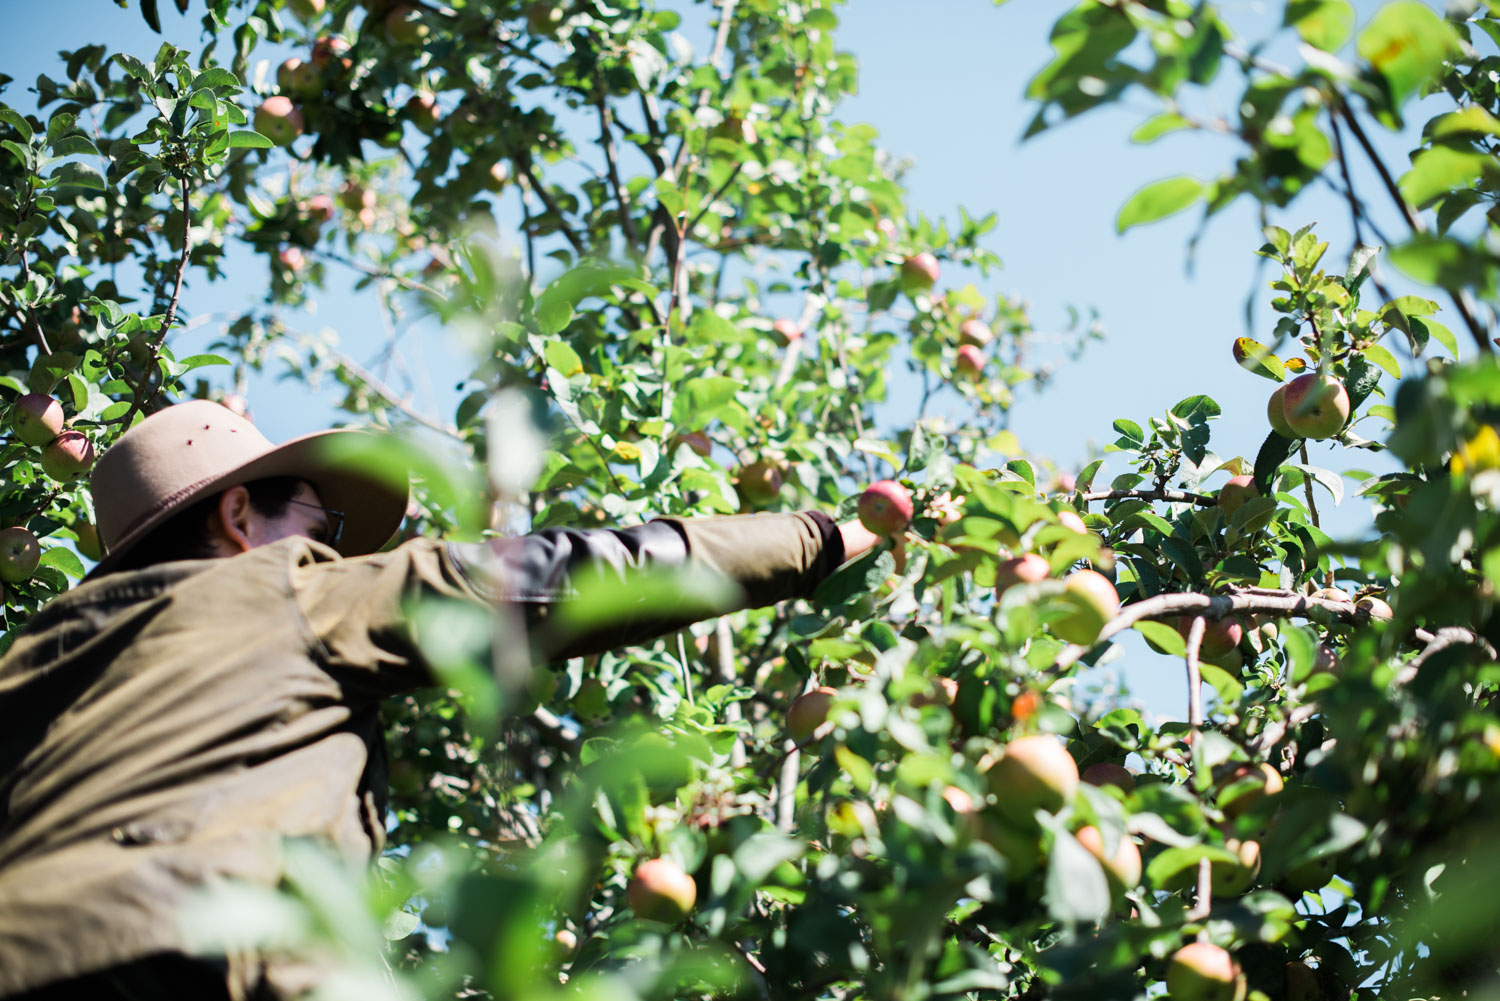 hannahpuechmarin-travelphotography-tenterfield-applepicking-2.jpg